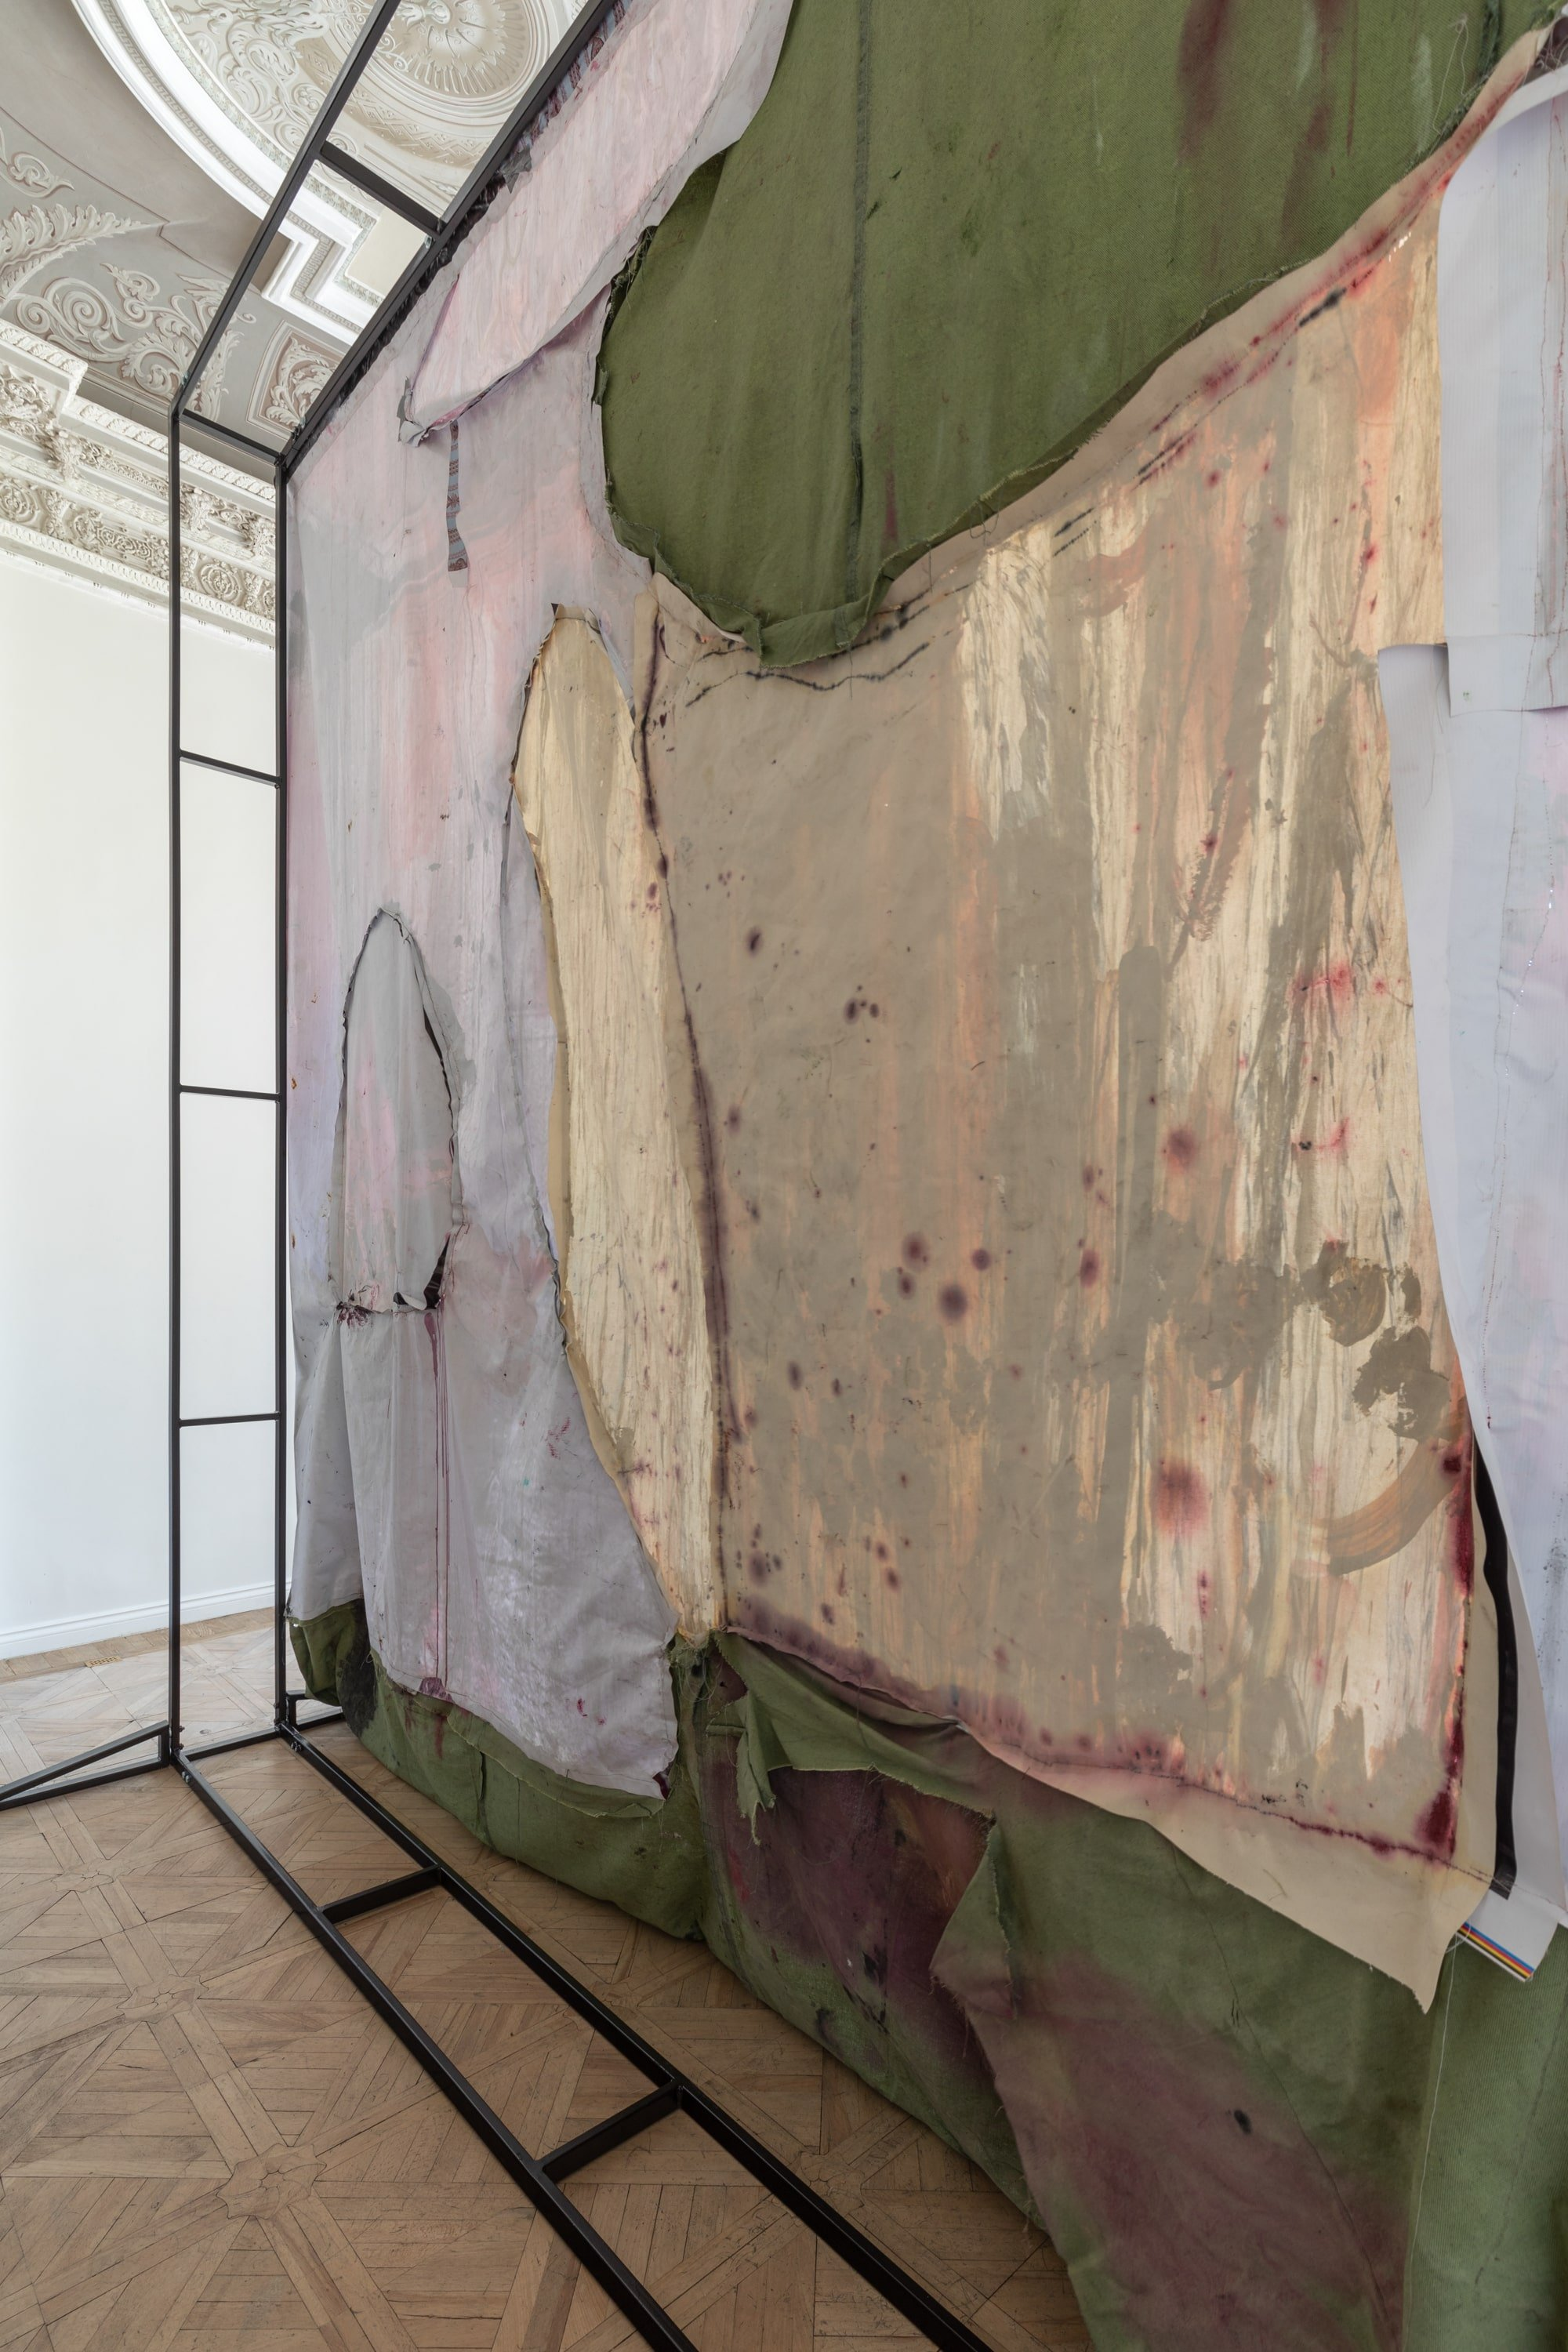 Ipatyev's Room (back side), 2019. From the personal show Red Garden at the Szena gallery, Moscow